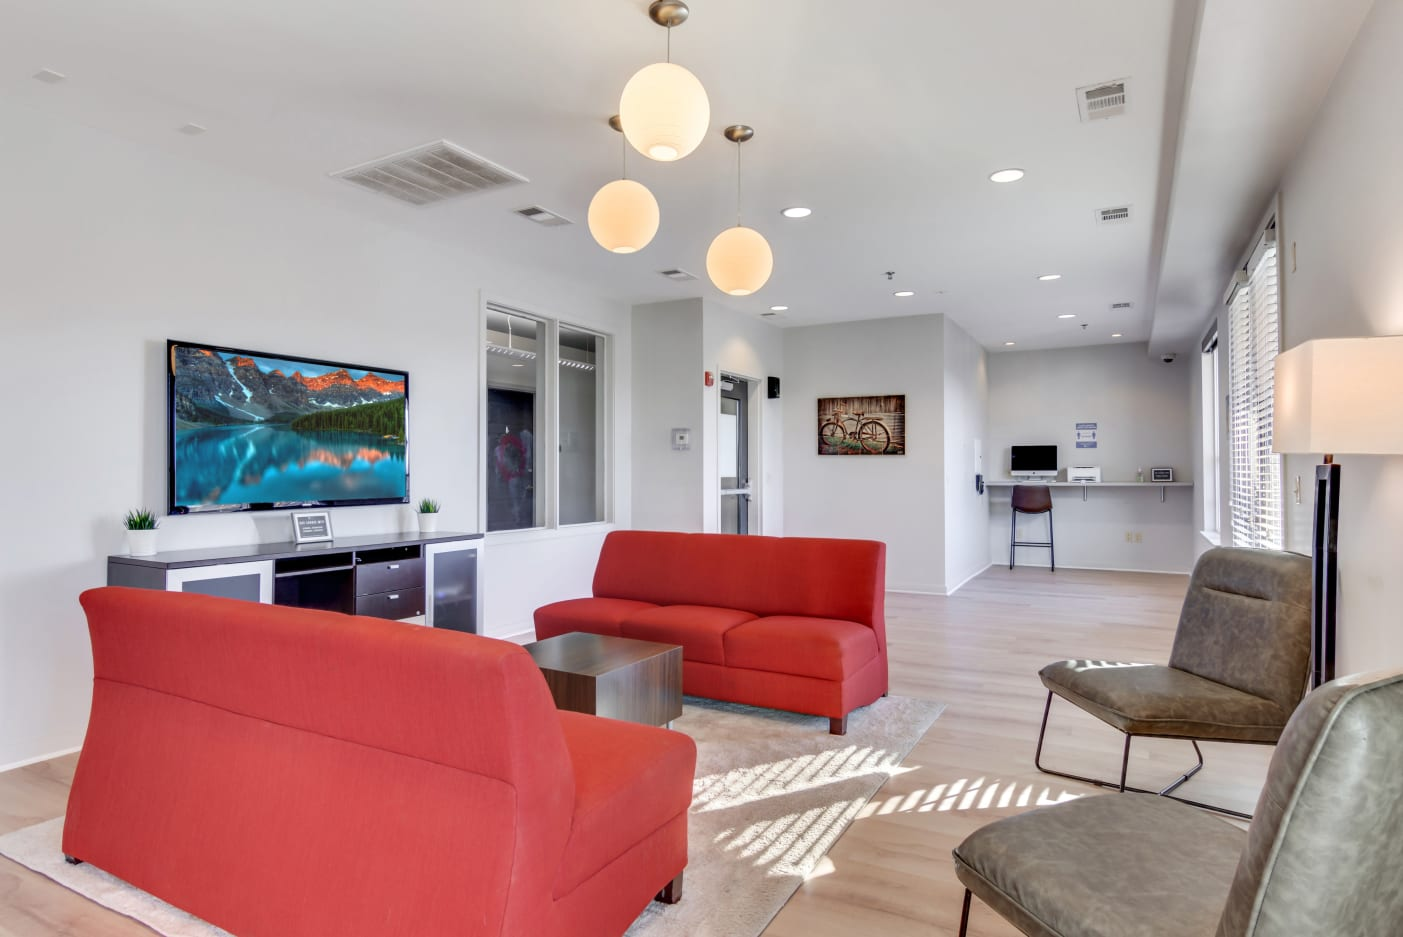 nashville-apartments-with-modern-bright-spaces